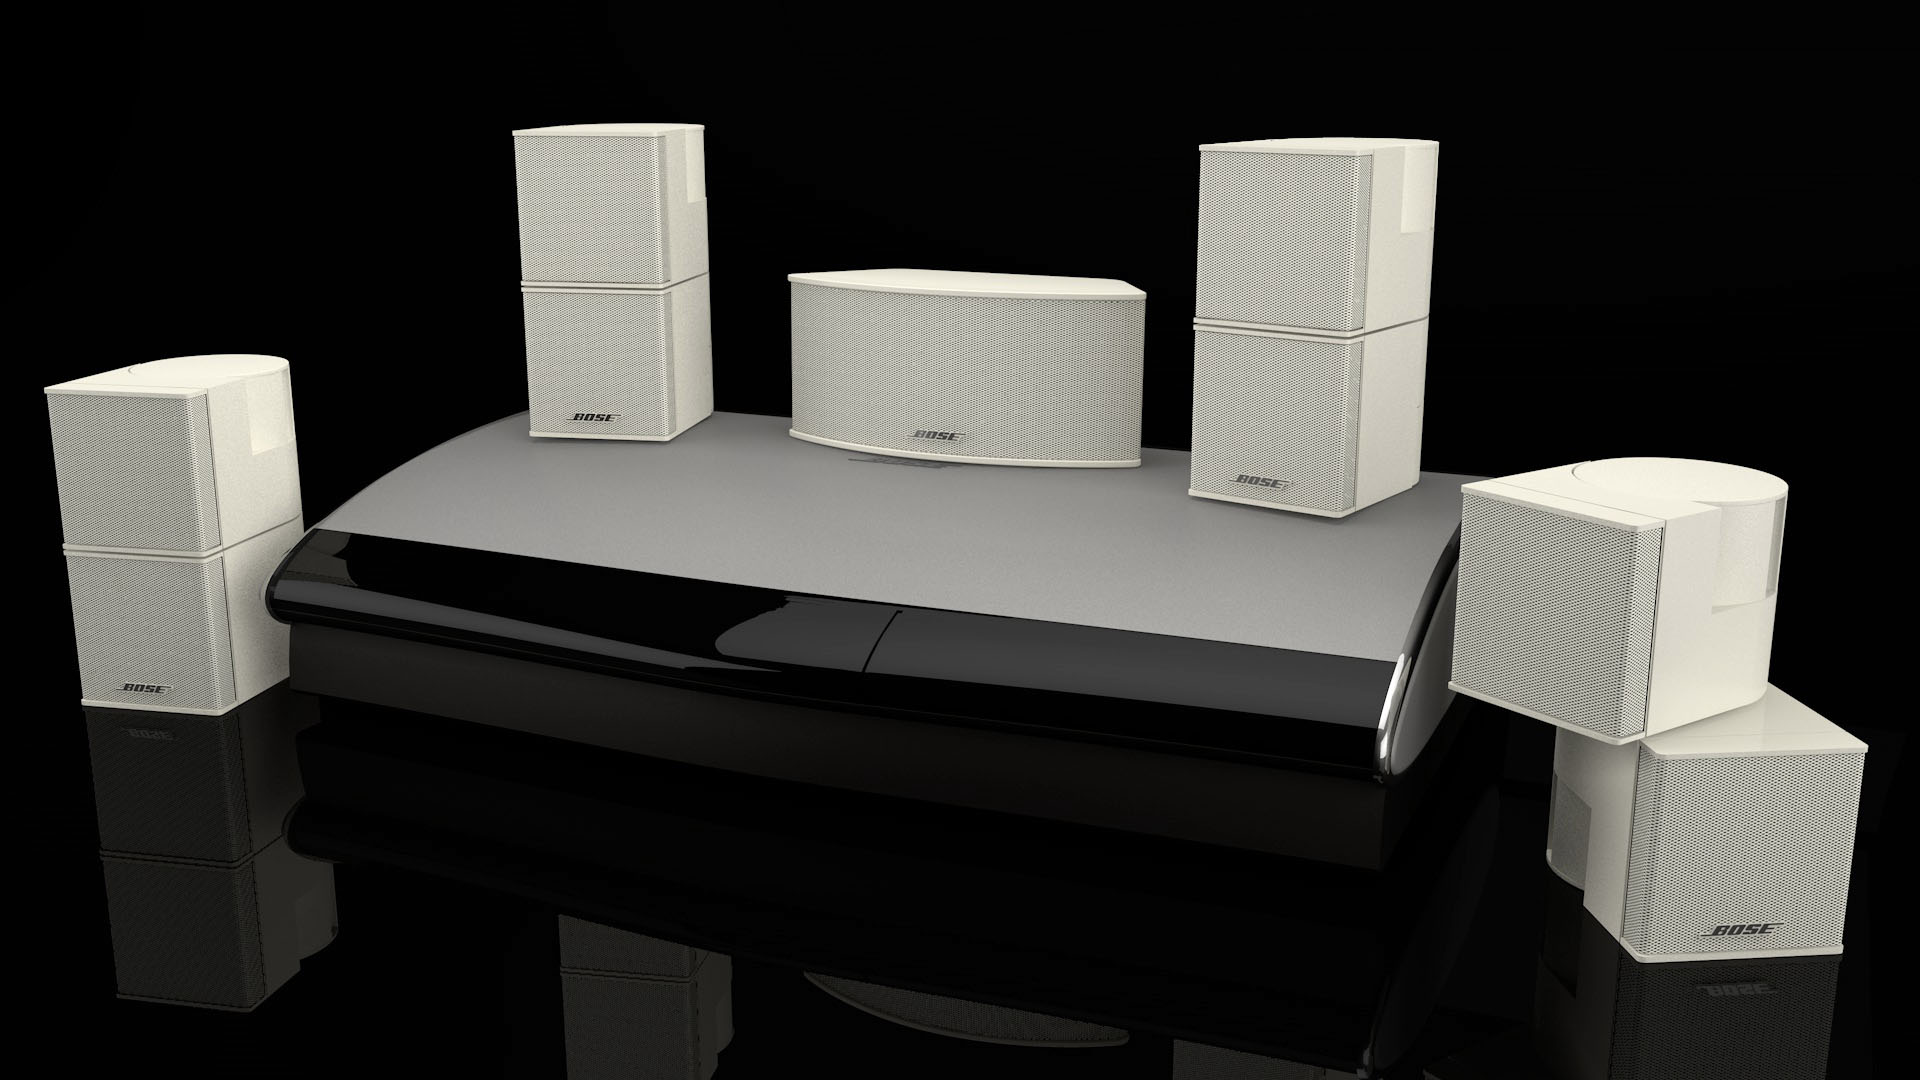 Bose Media Center and Speakers CGI